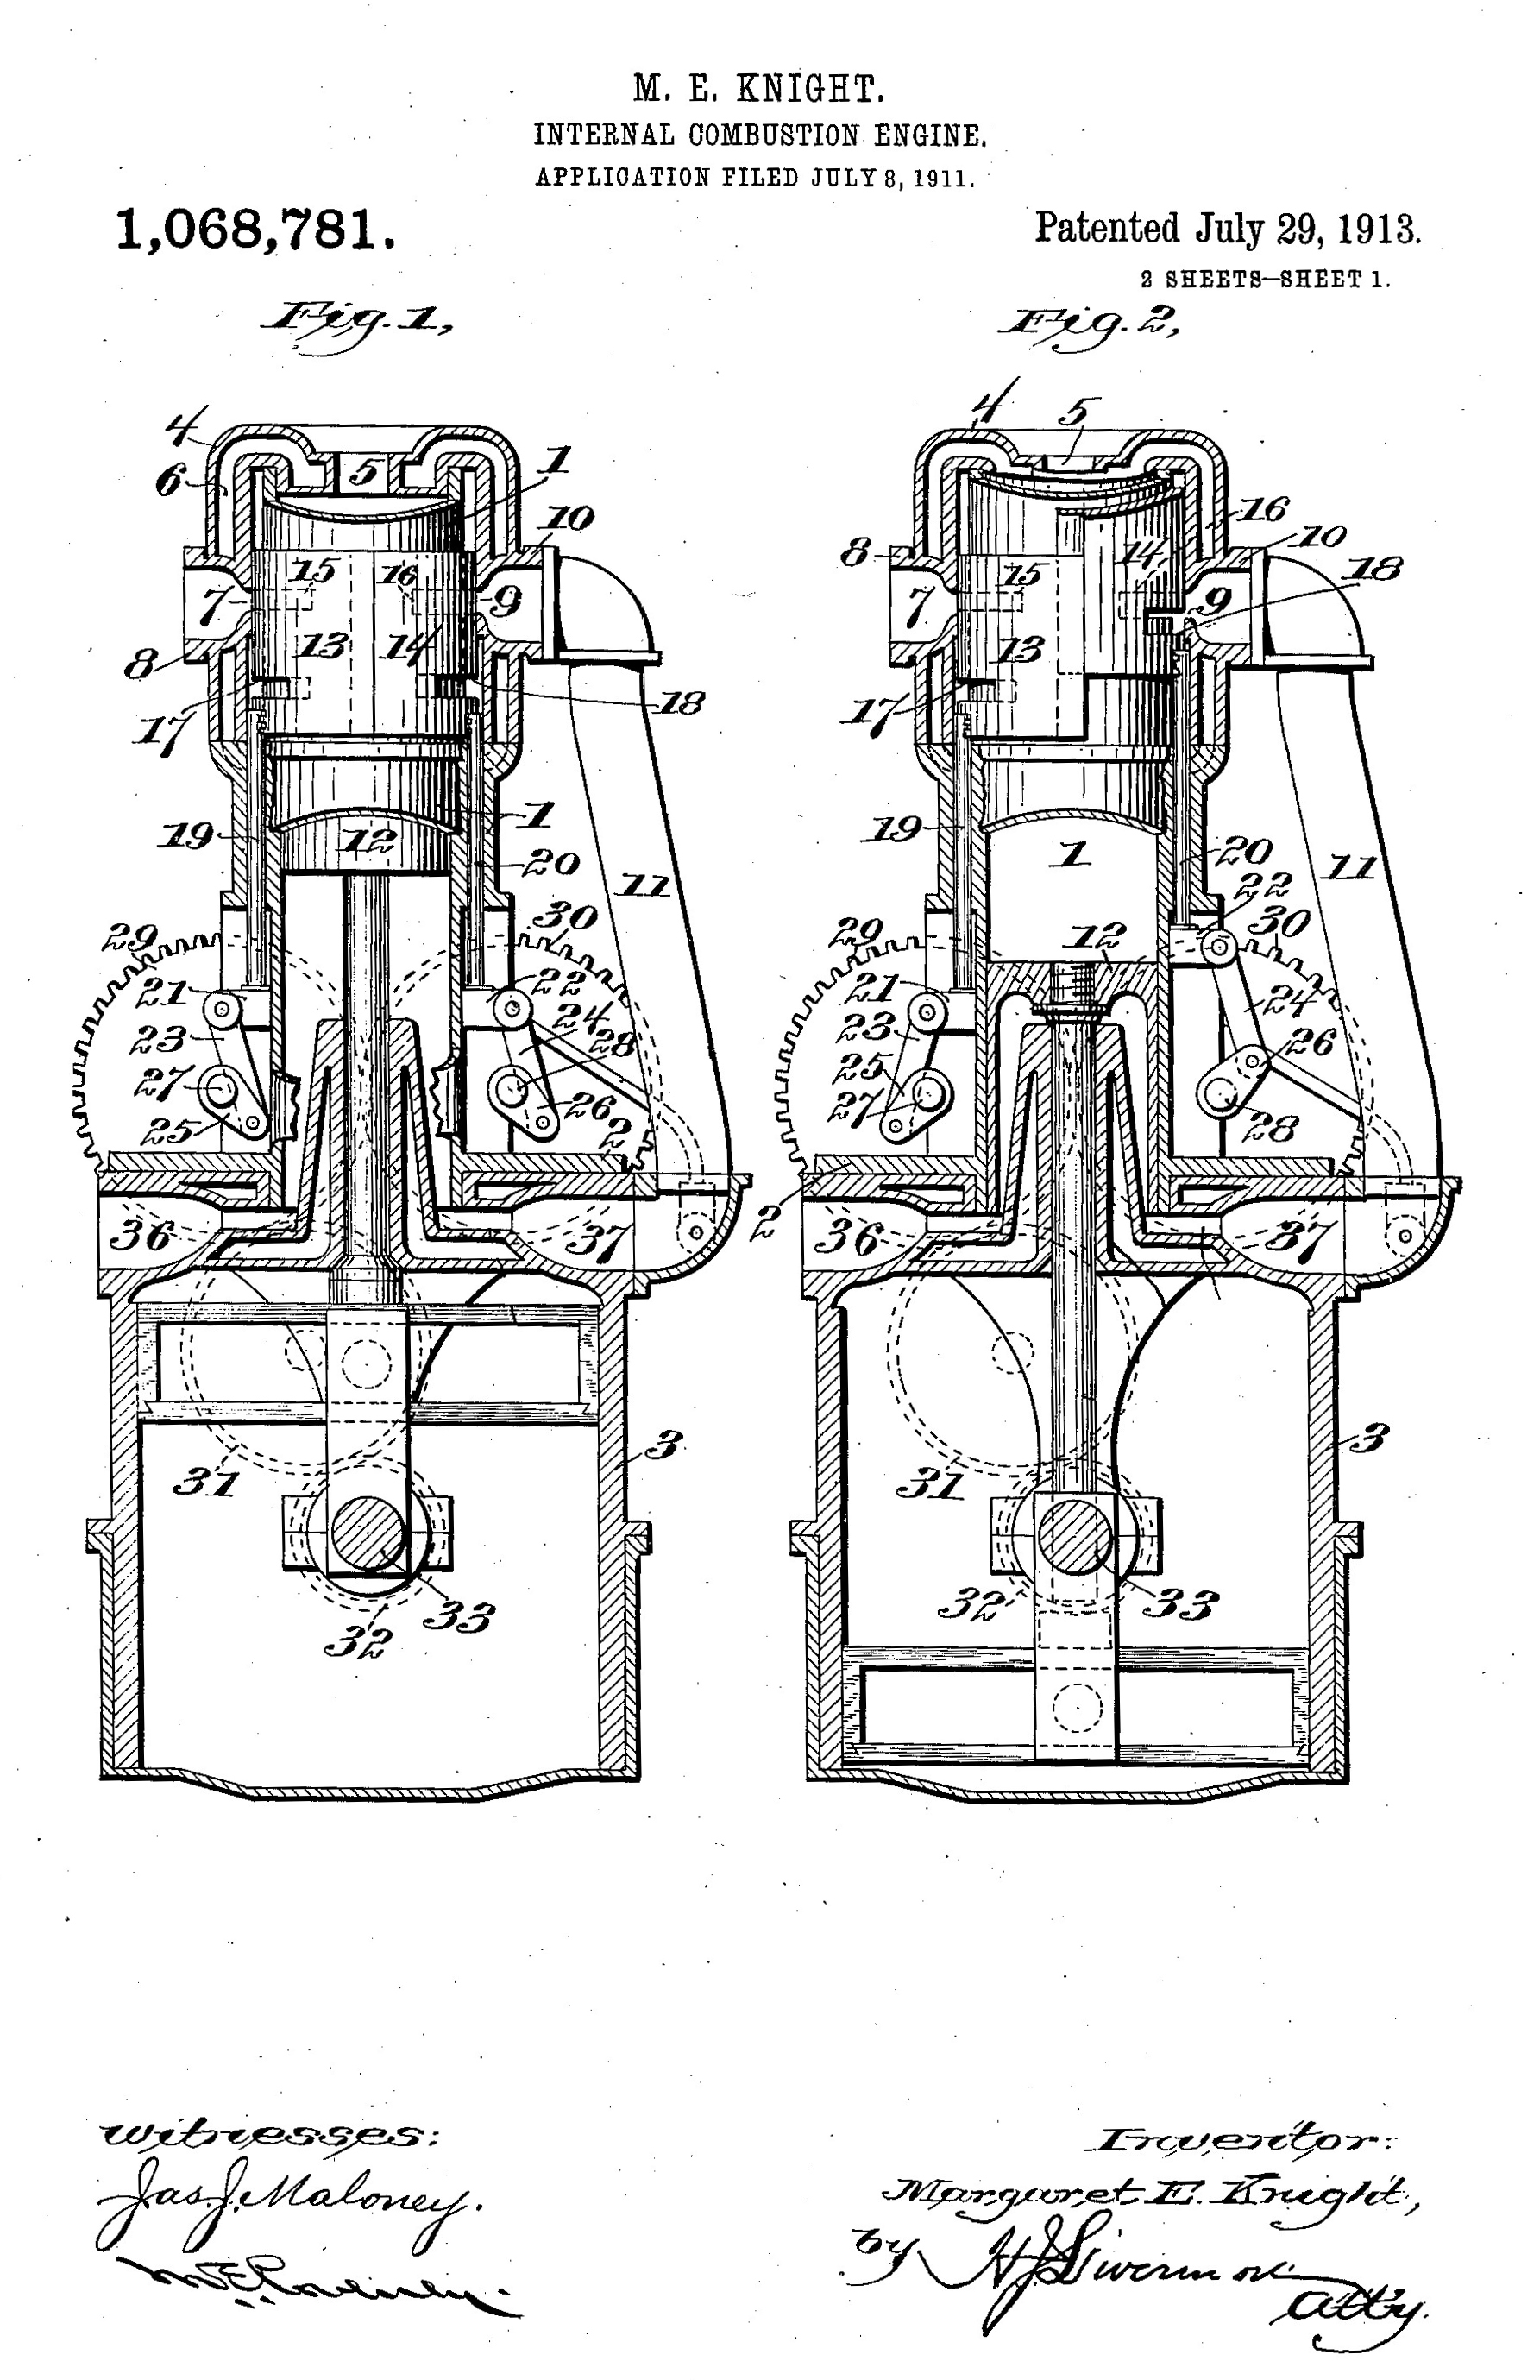 Datei:US1068781-Internal combustion engine (2).jpg